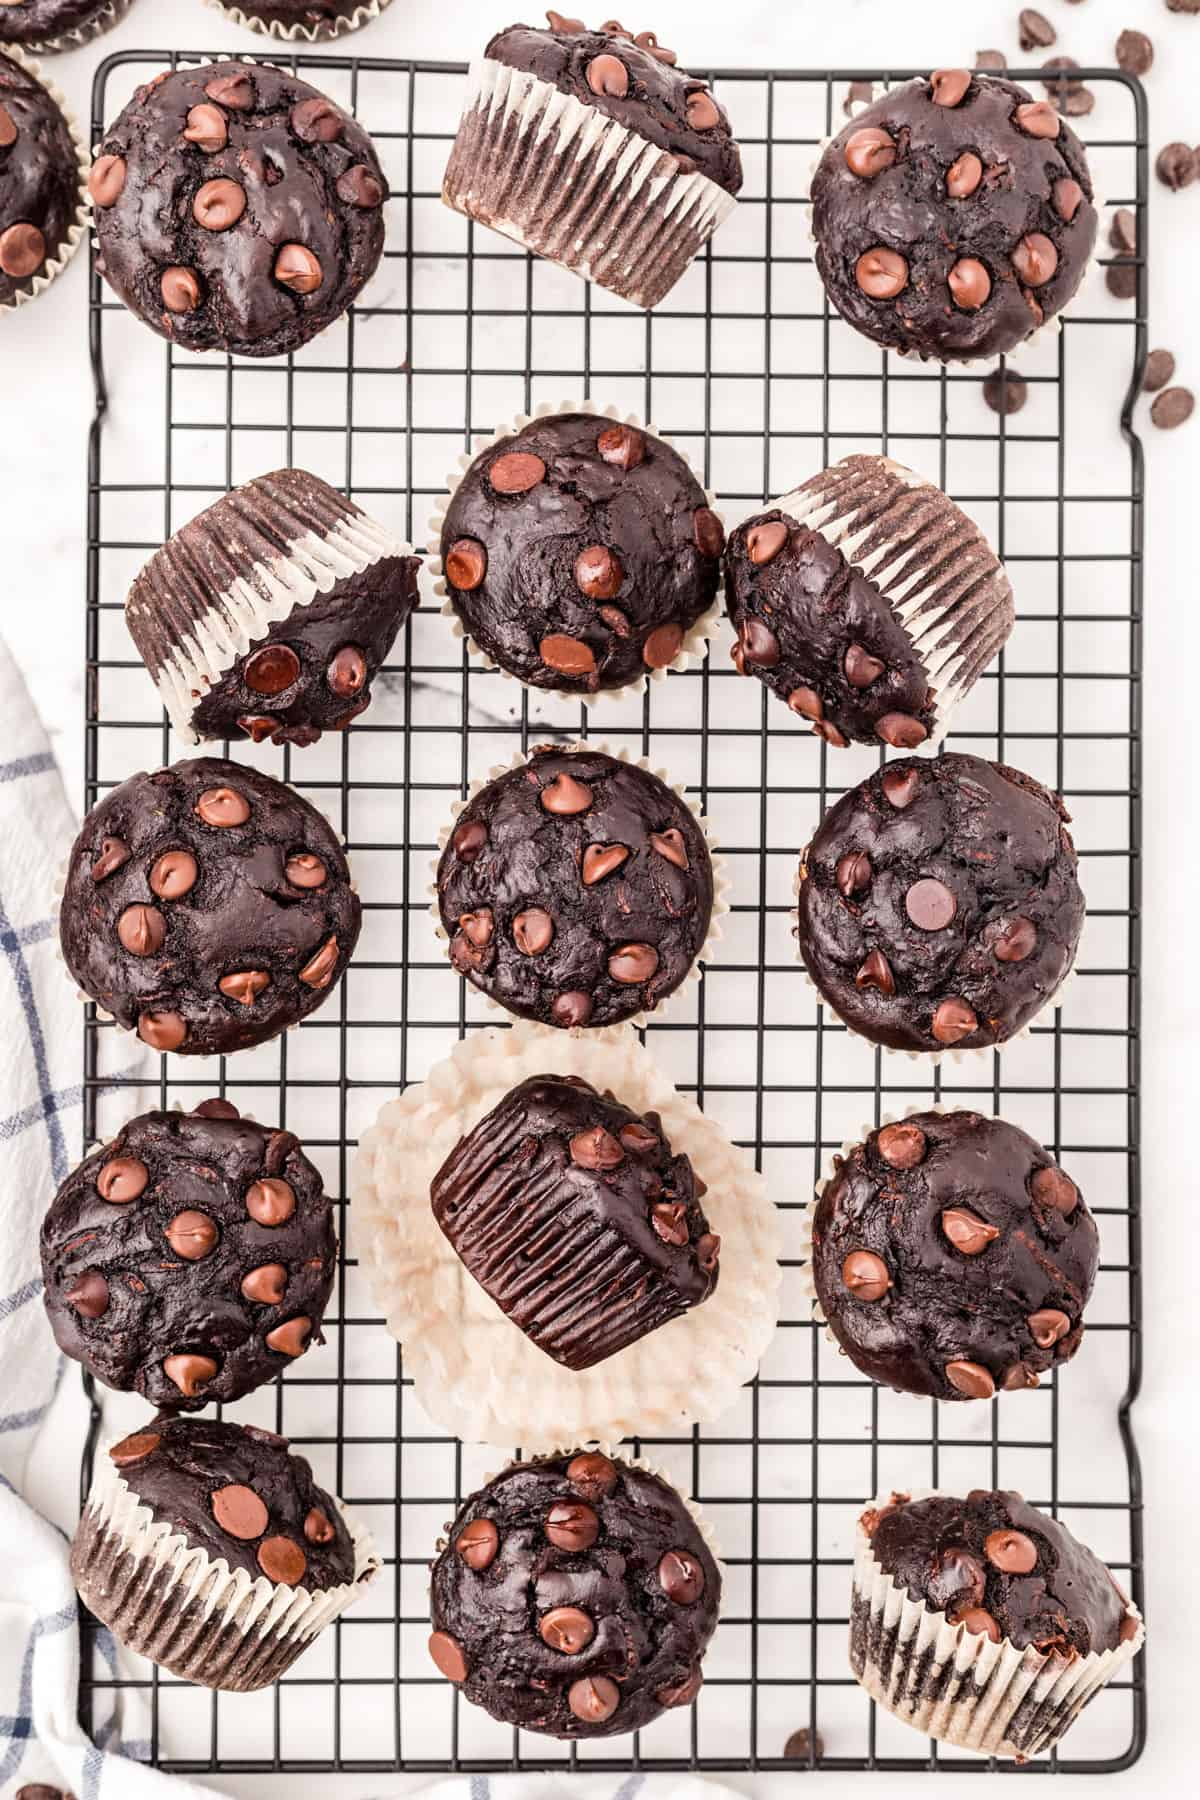 Zucchini muffins with chocolate on a wire cooling rack.